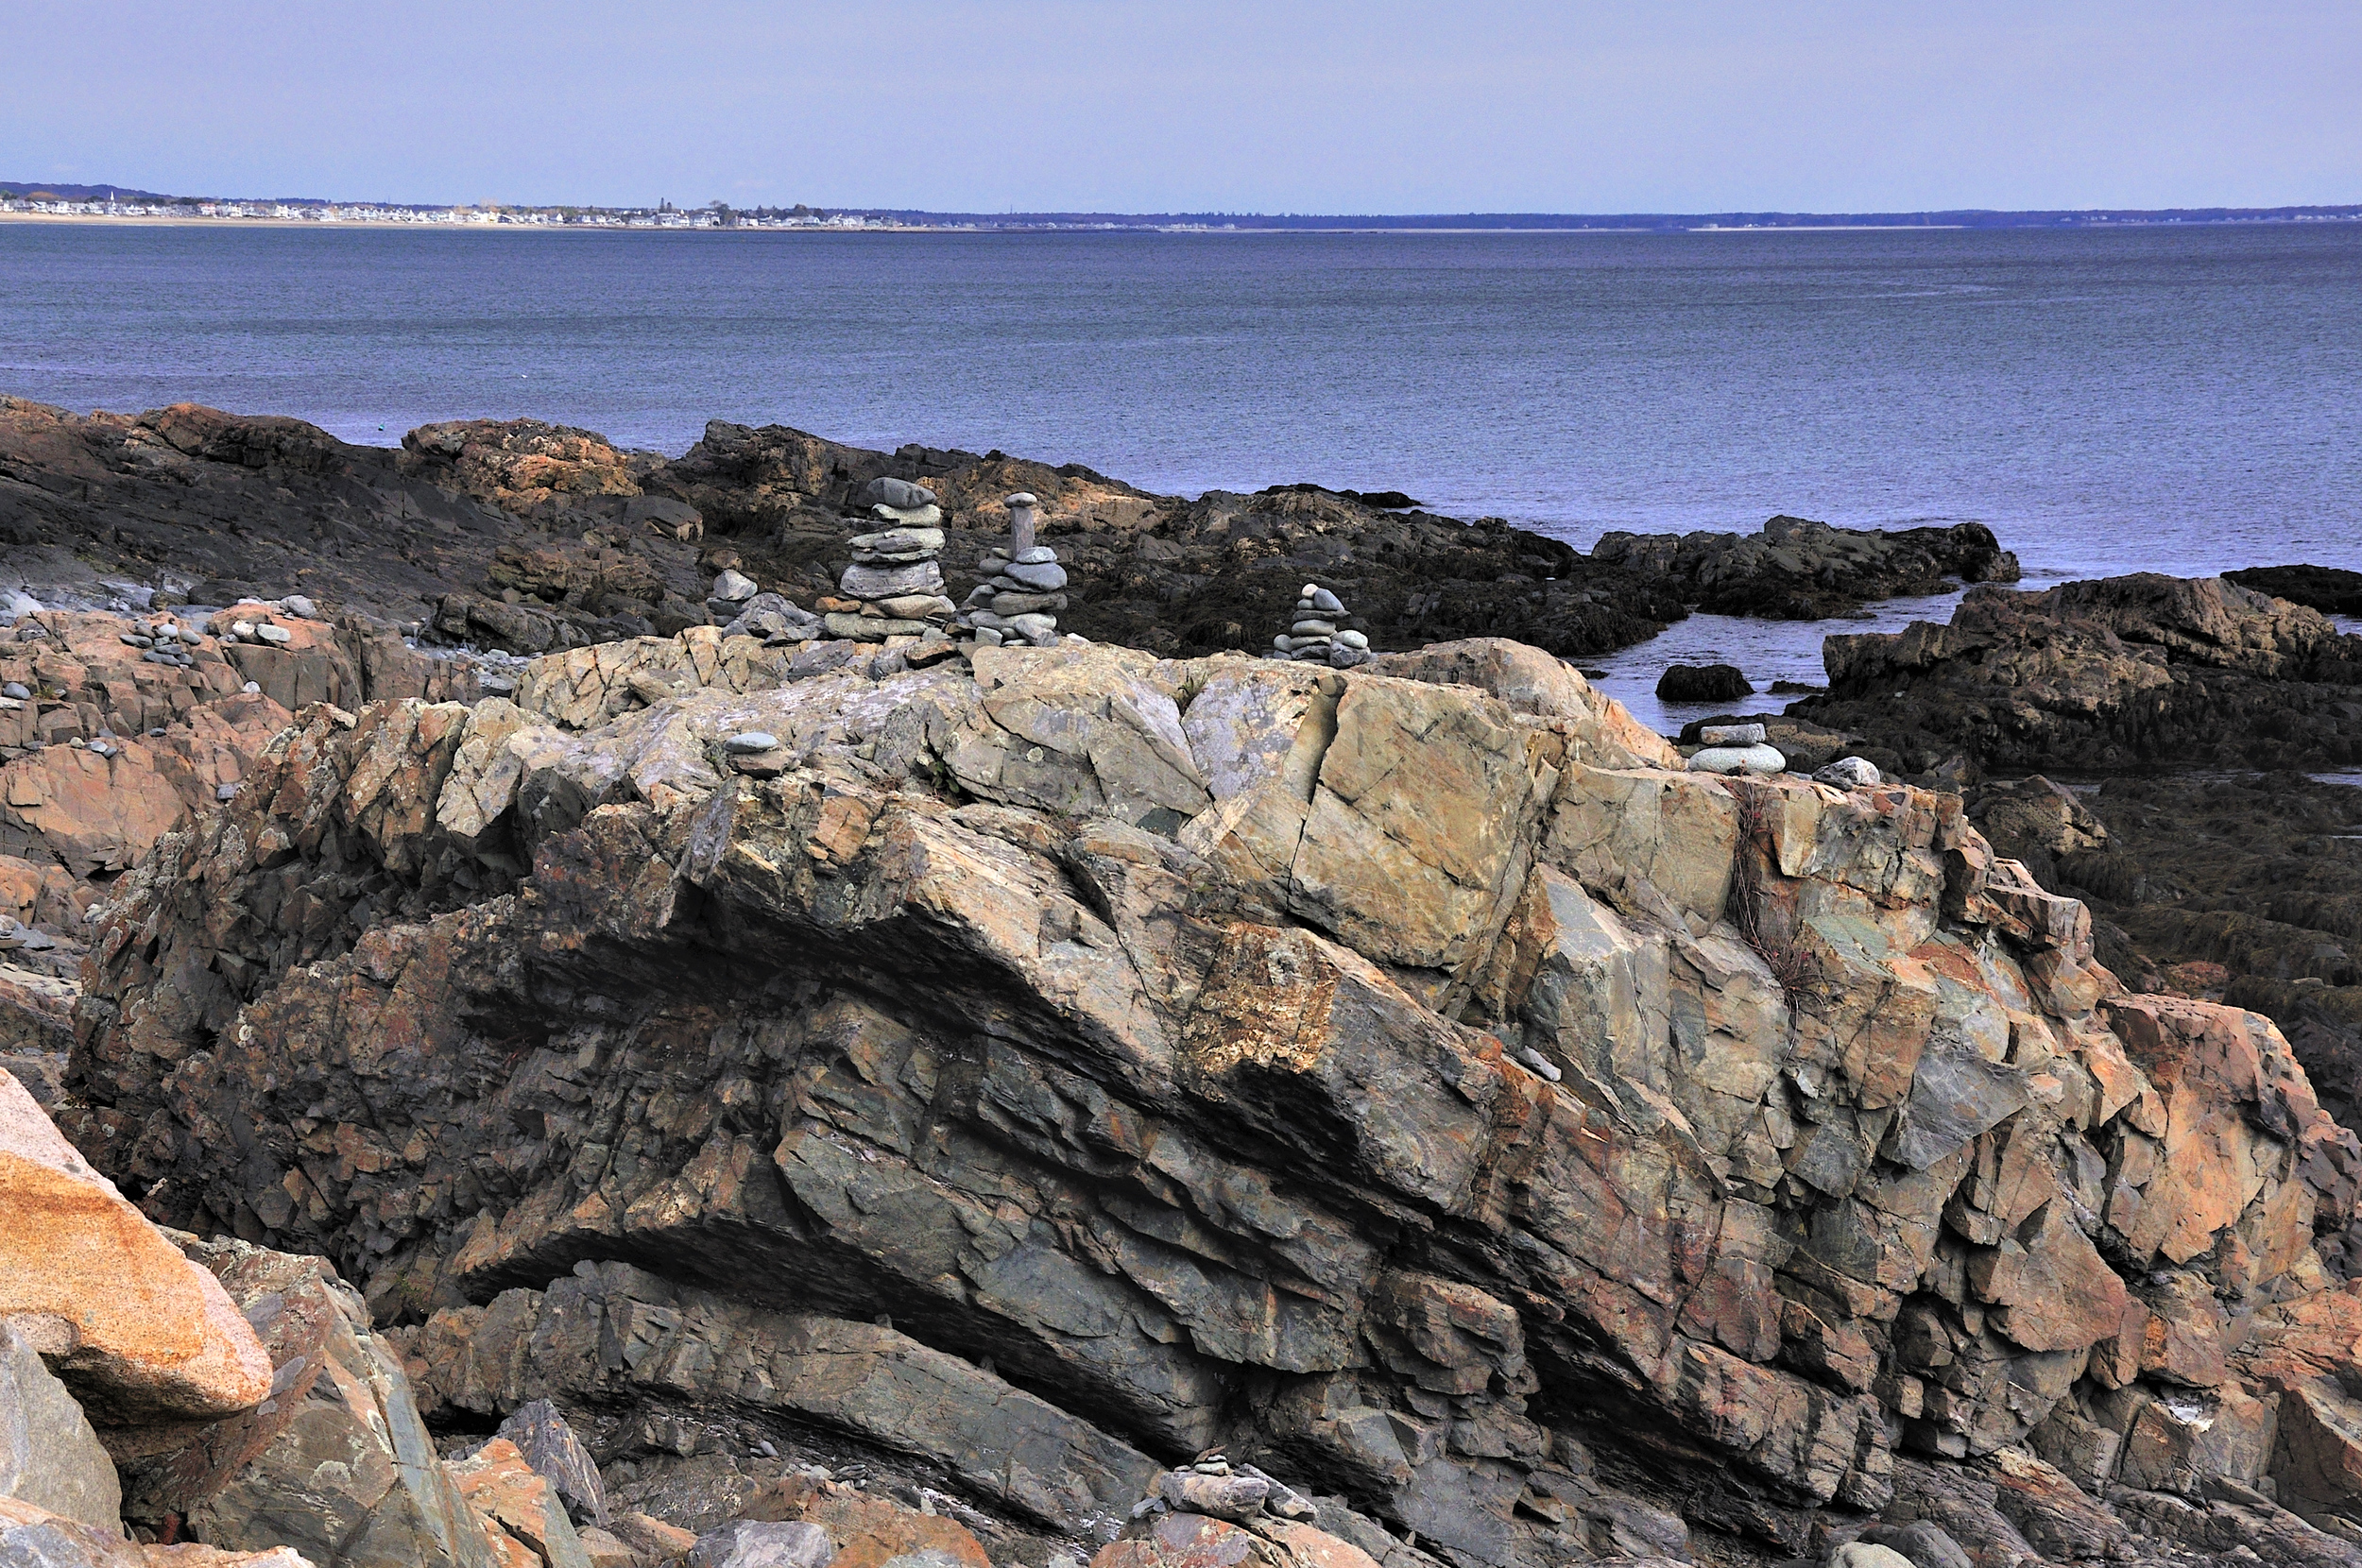 Stone Stacks, Marginal Way, Ogunquit, ME